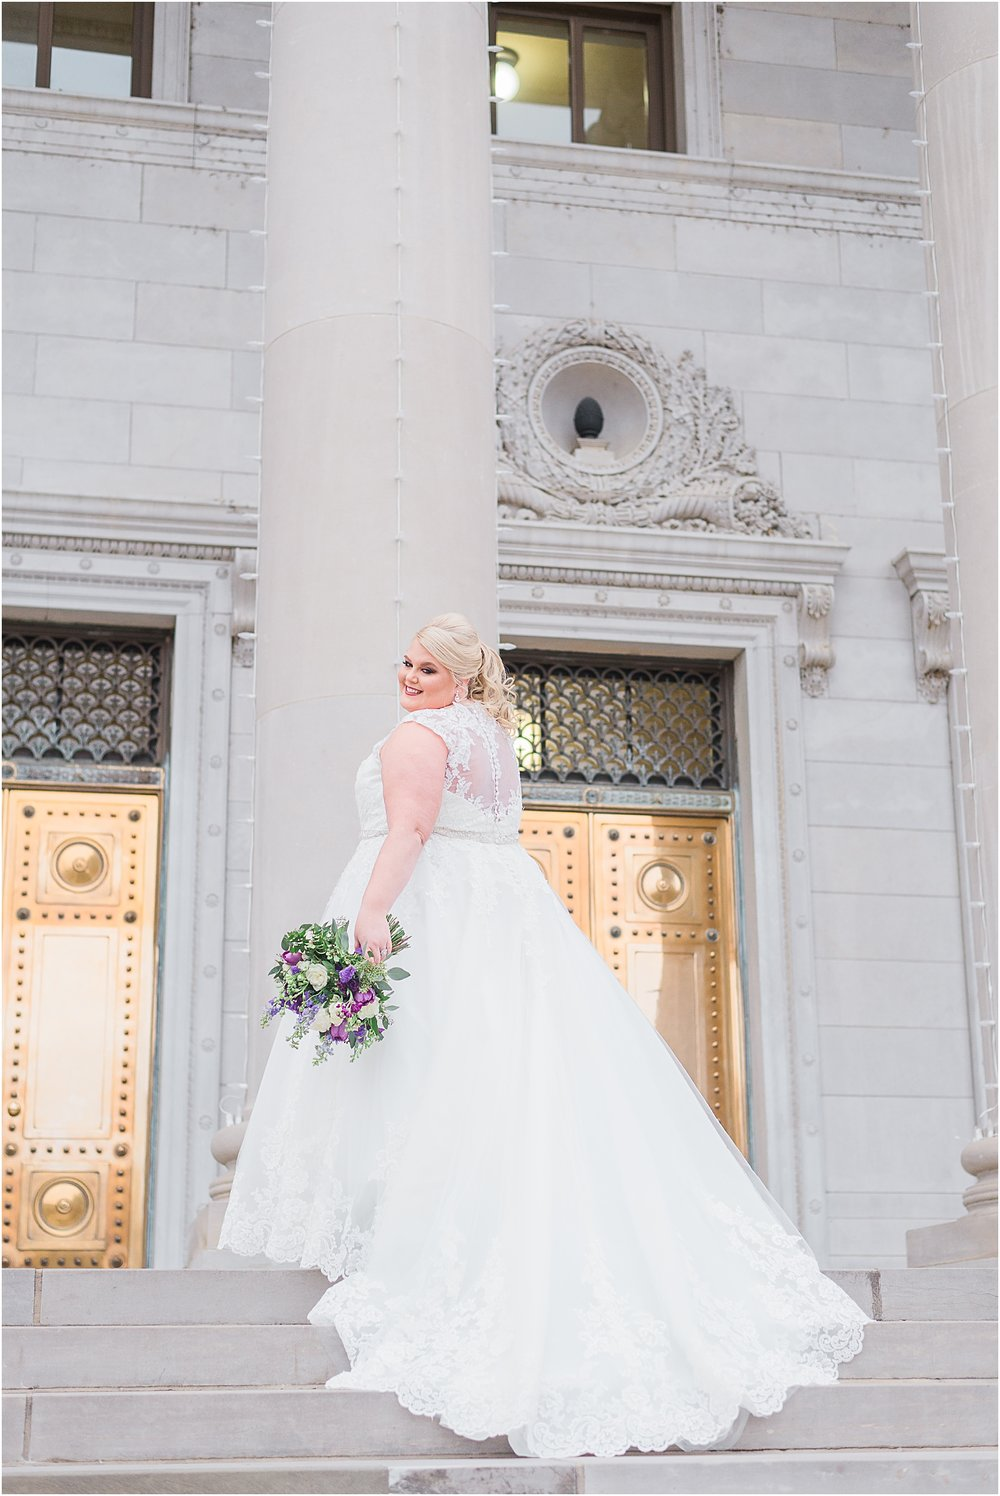 State Capitol bride and wedding photographer